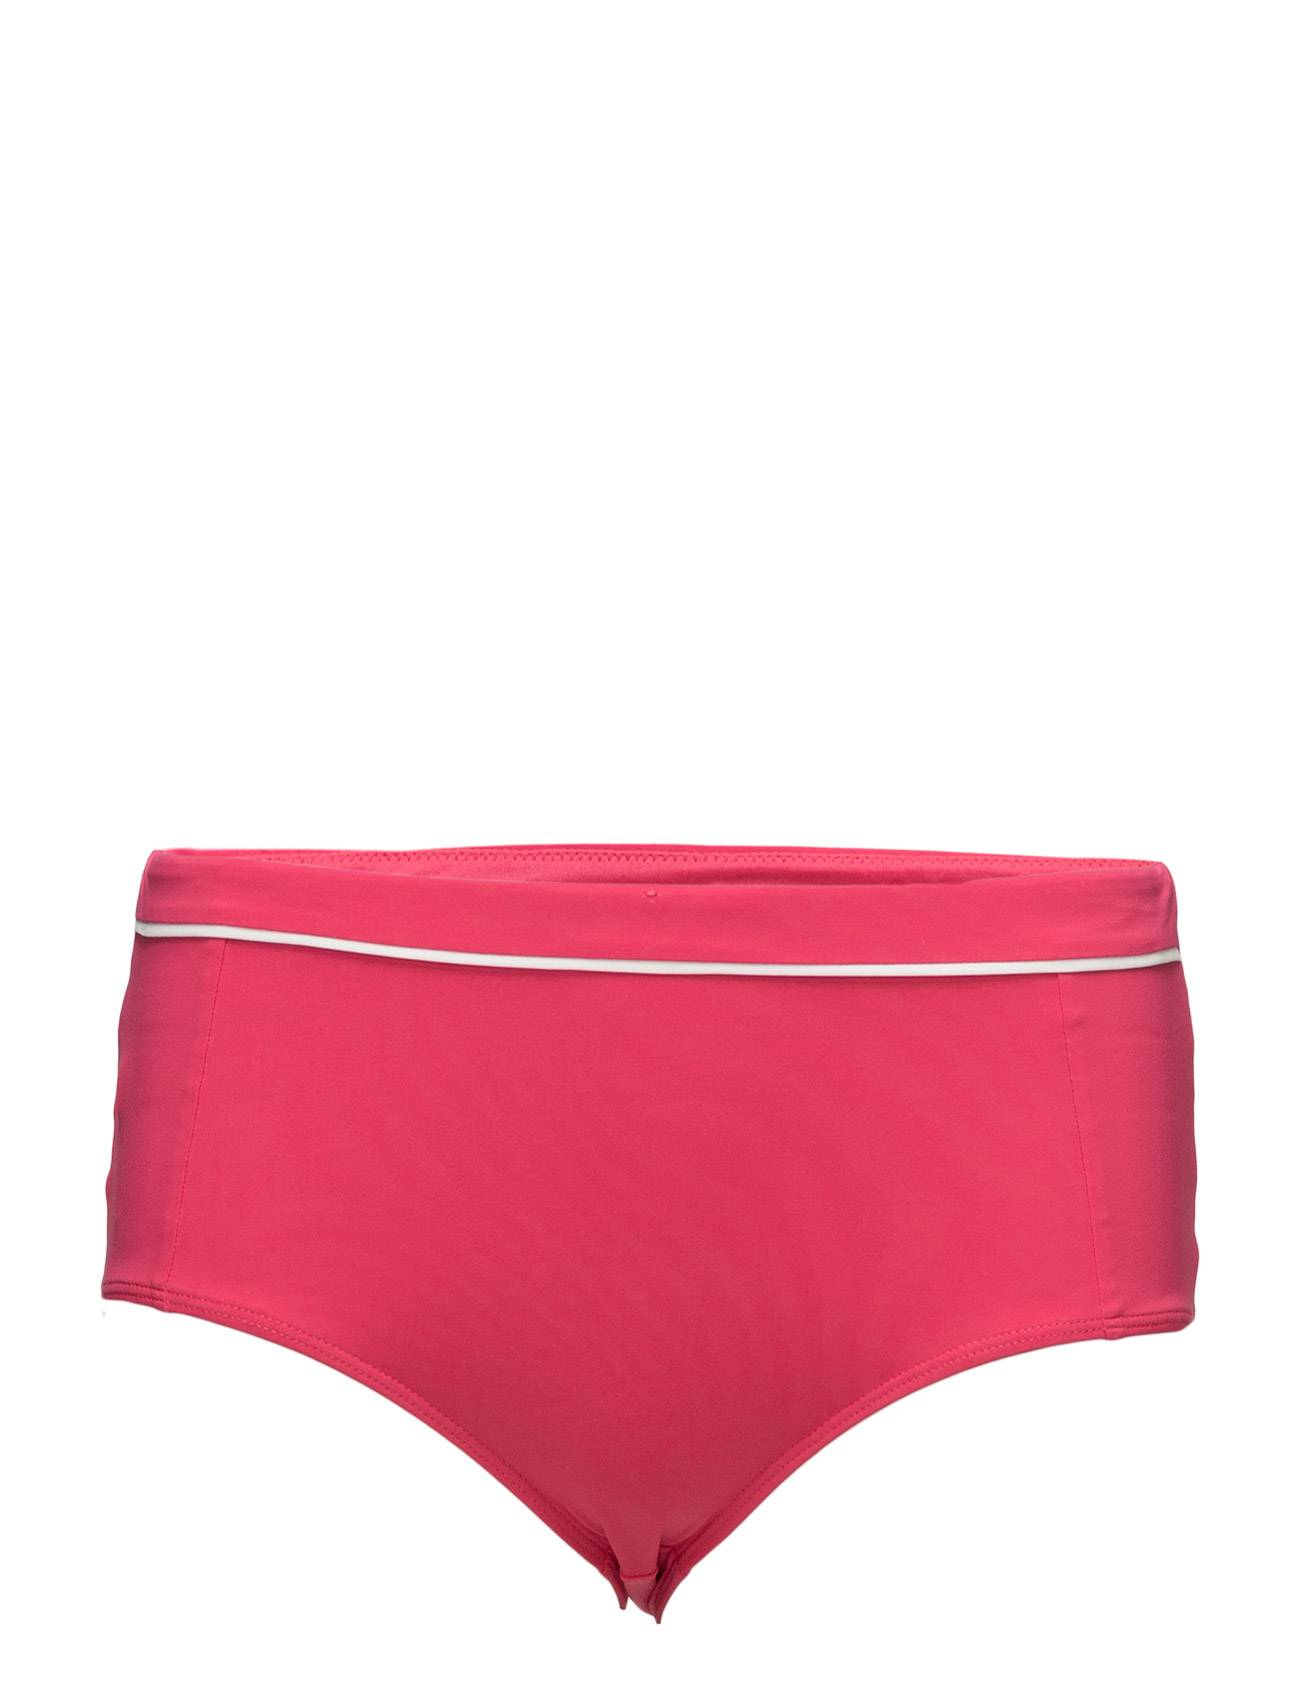 Femilet Coco - Midi Brief